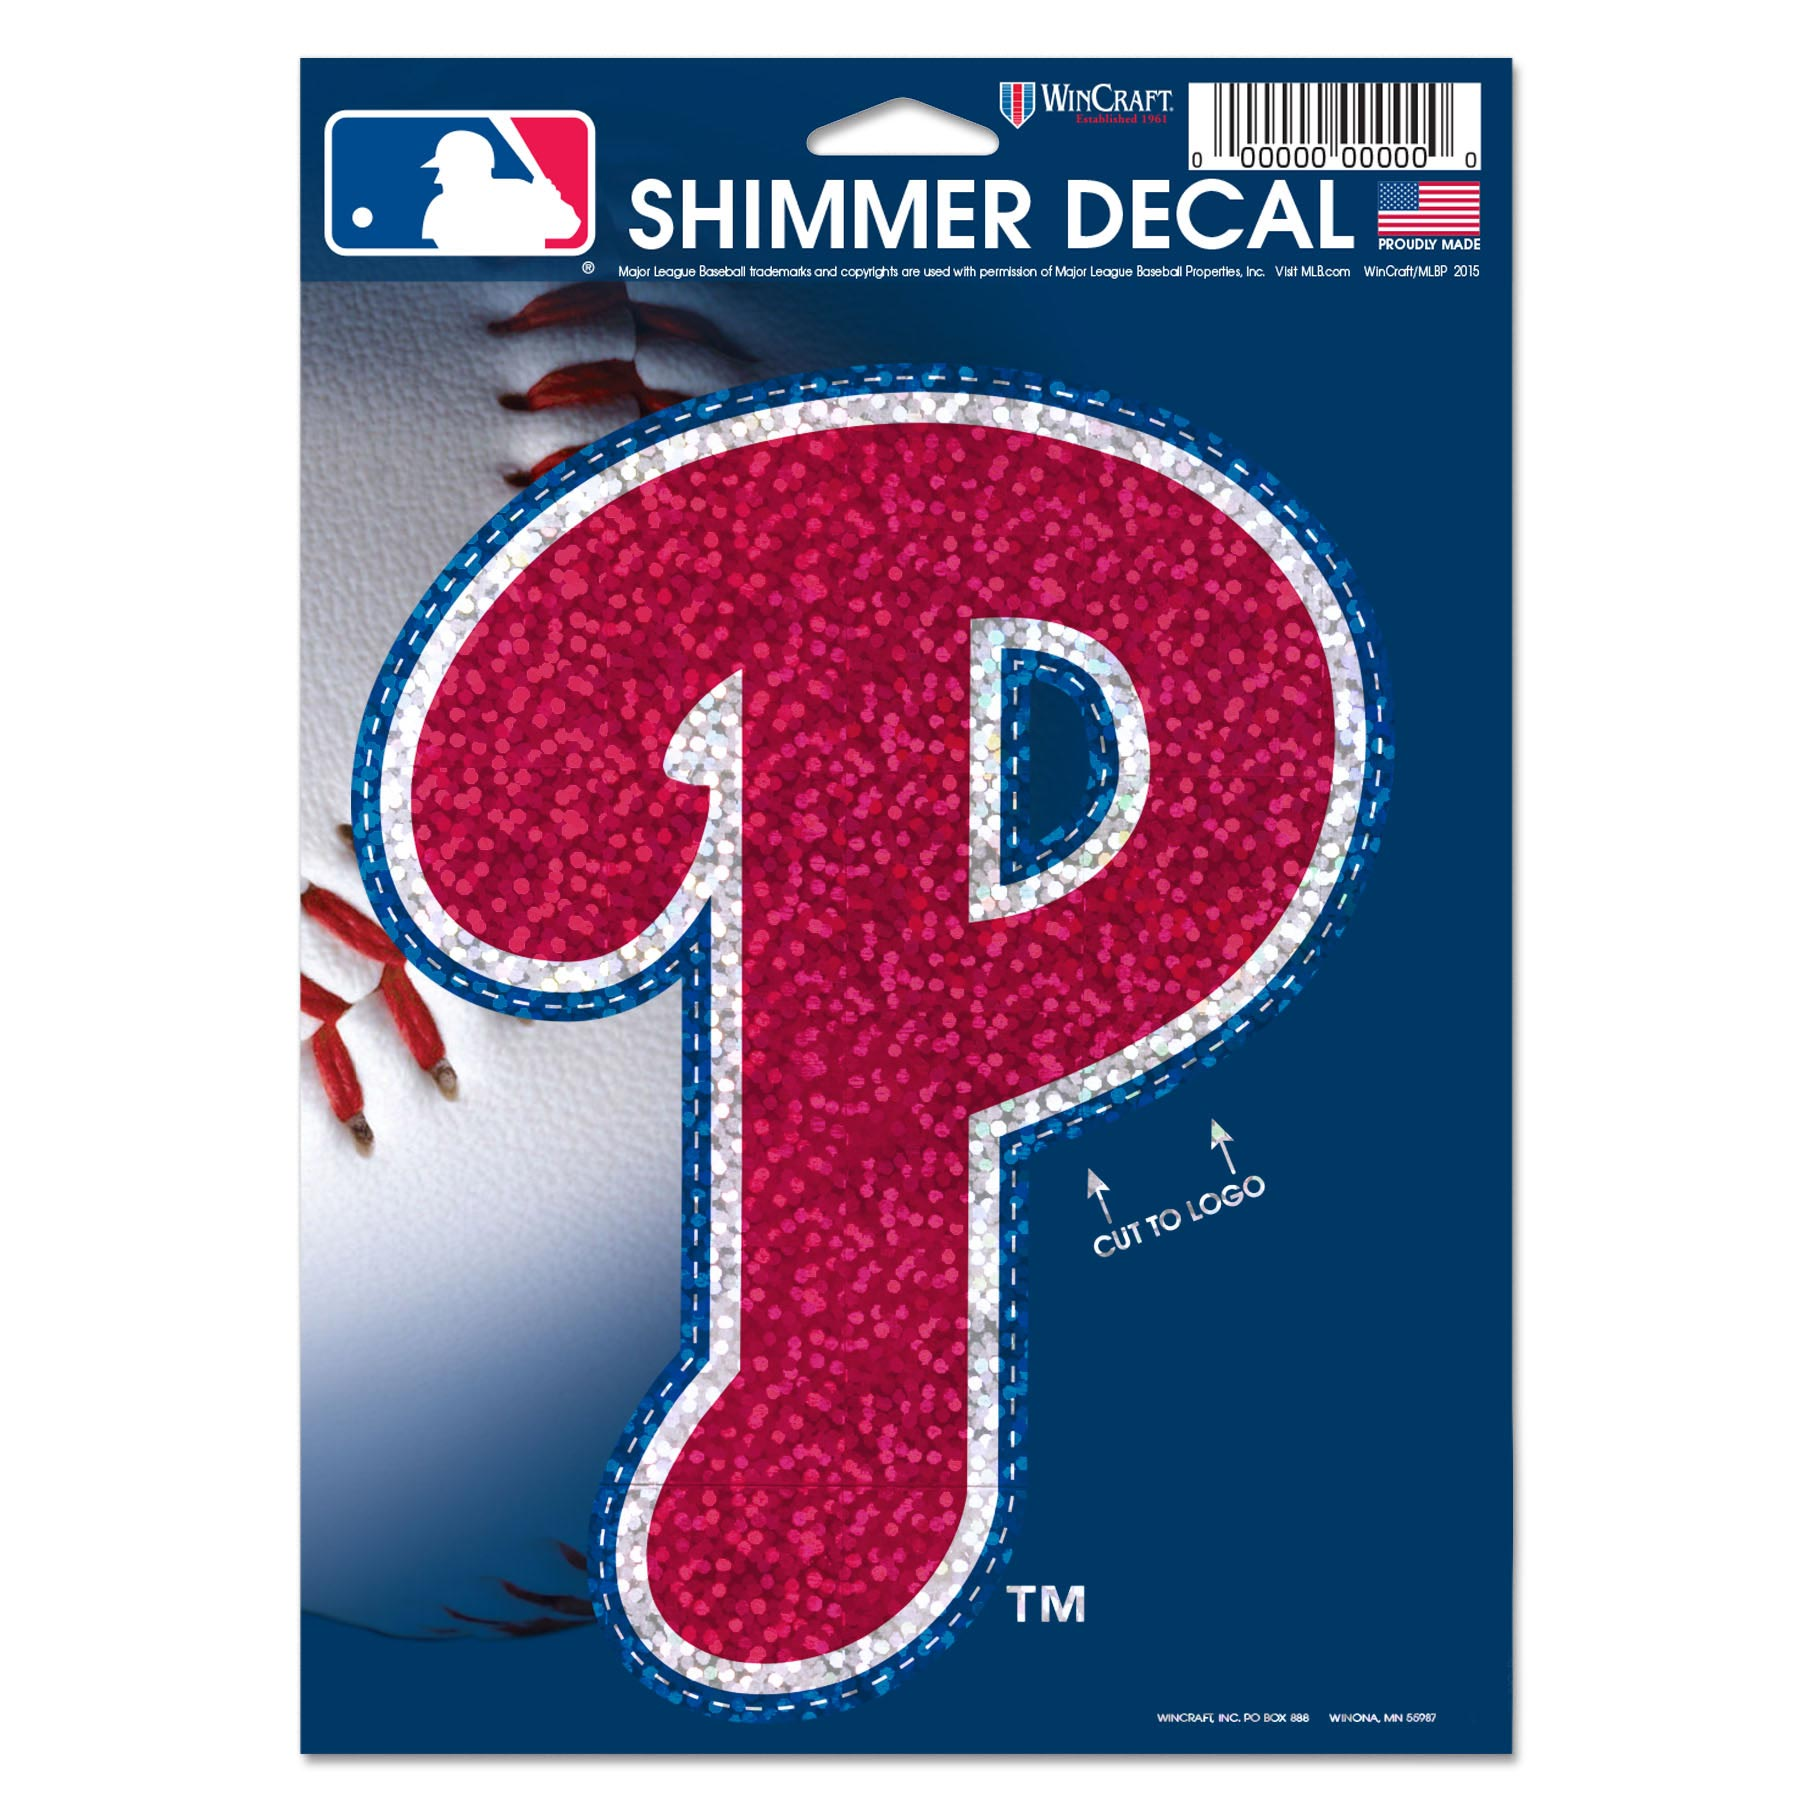 "Philadelphia Phillies WinCraft 5"" x 7"" Shimmer Decal"